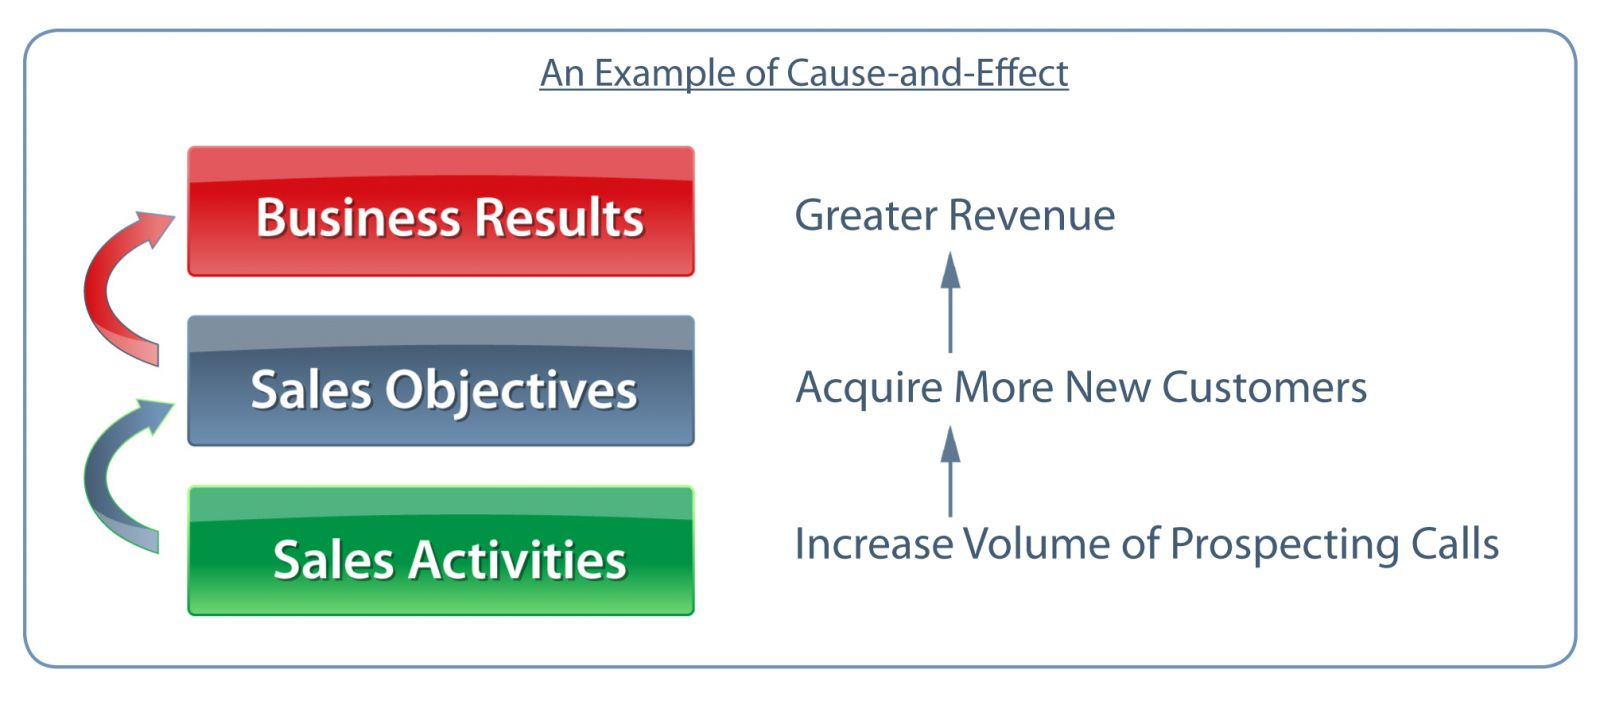 An Example of Cause and Effect